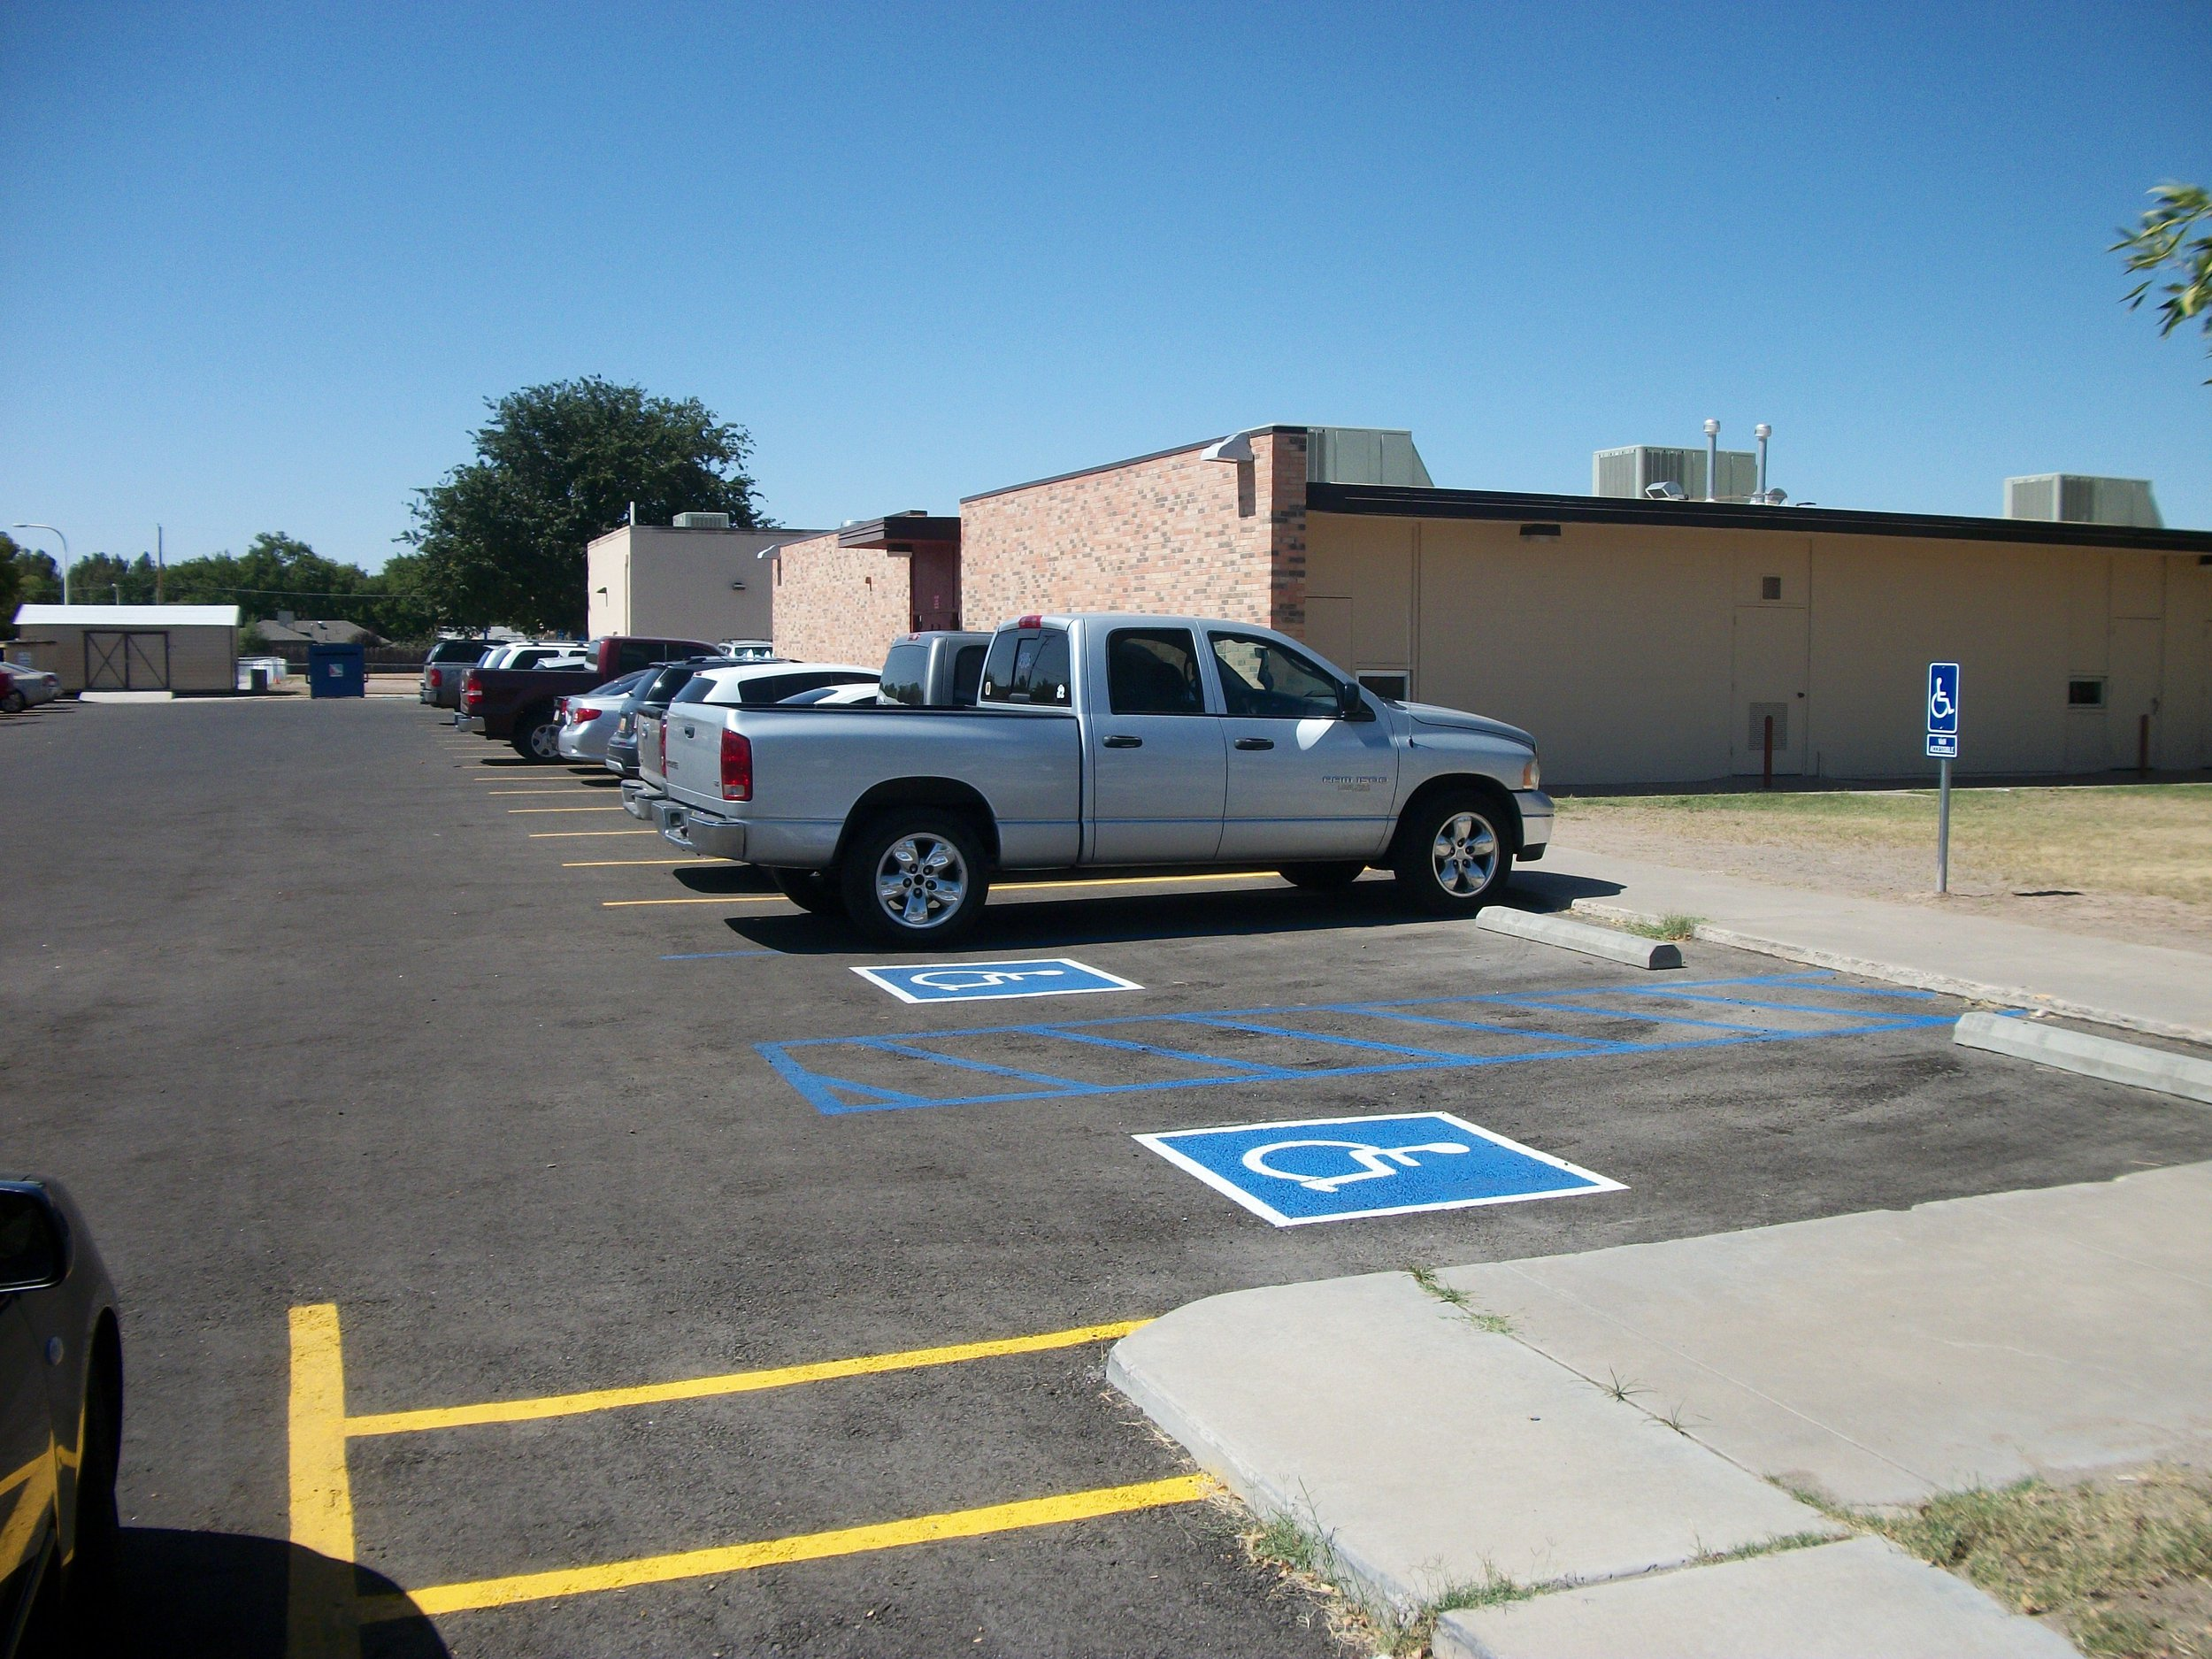 Parking lot Repair & Maintenance